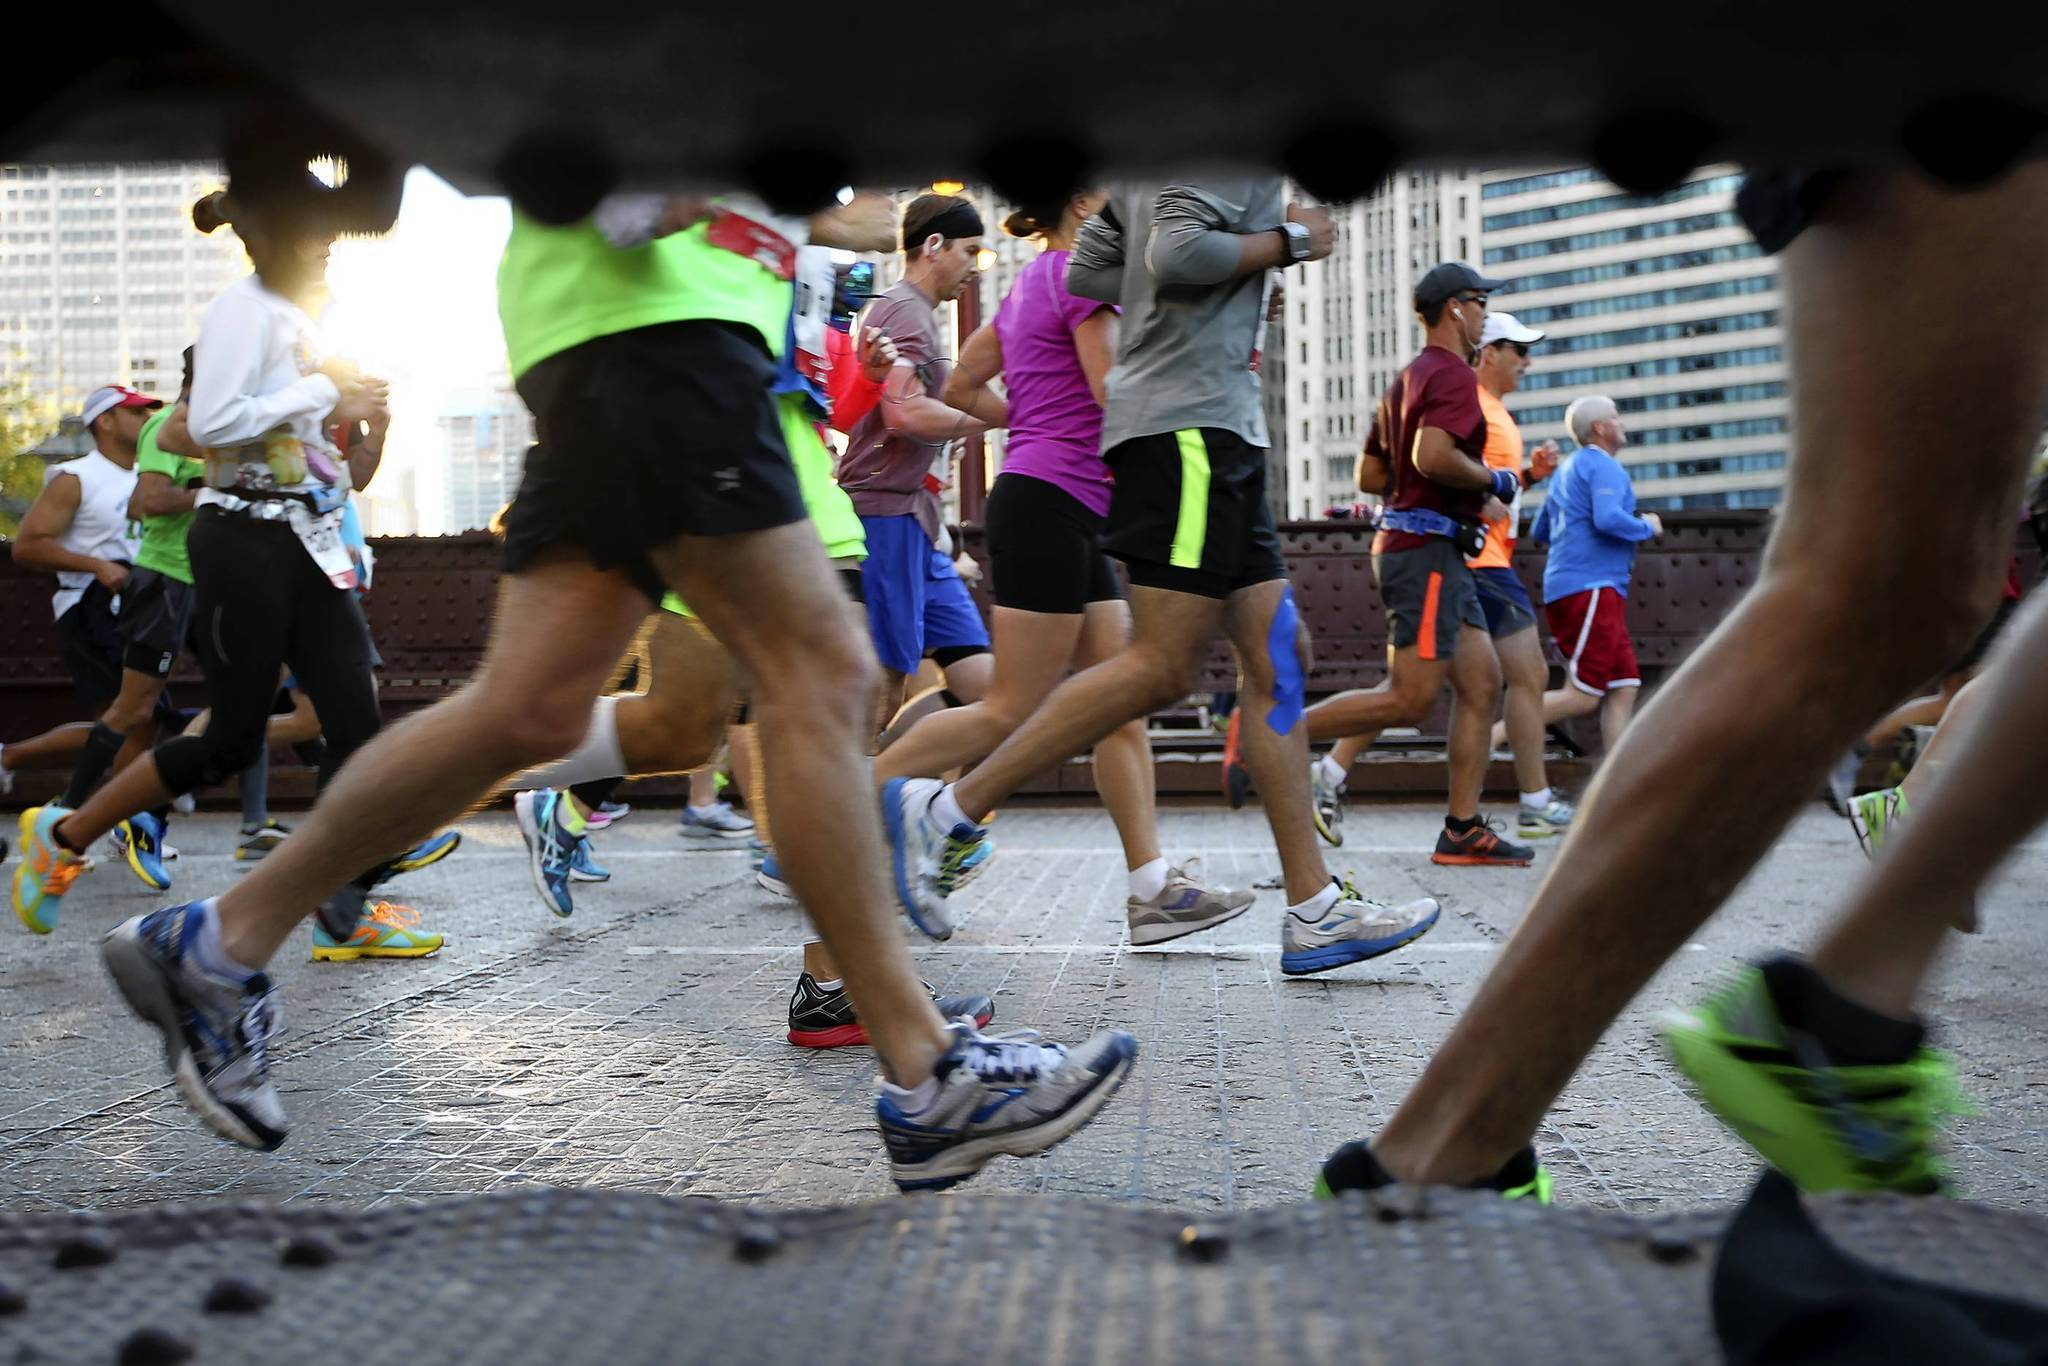 Scientists say 'runner's high' is like a marijuana high